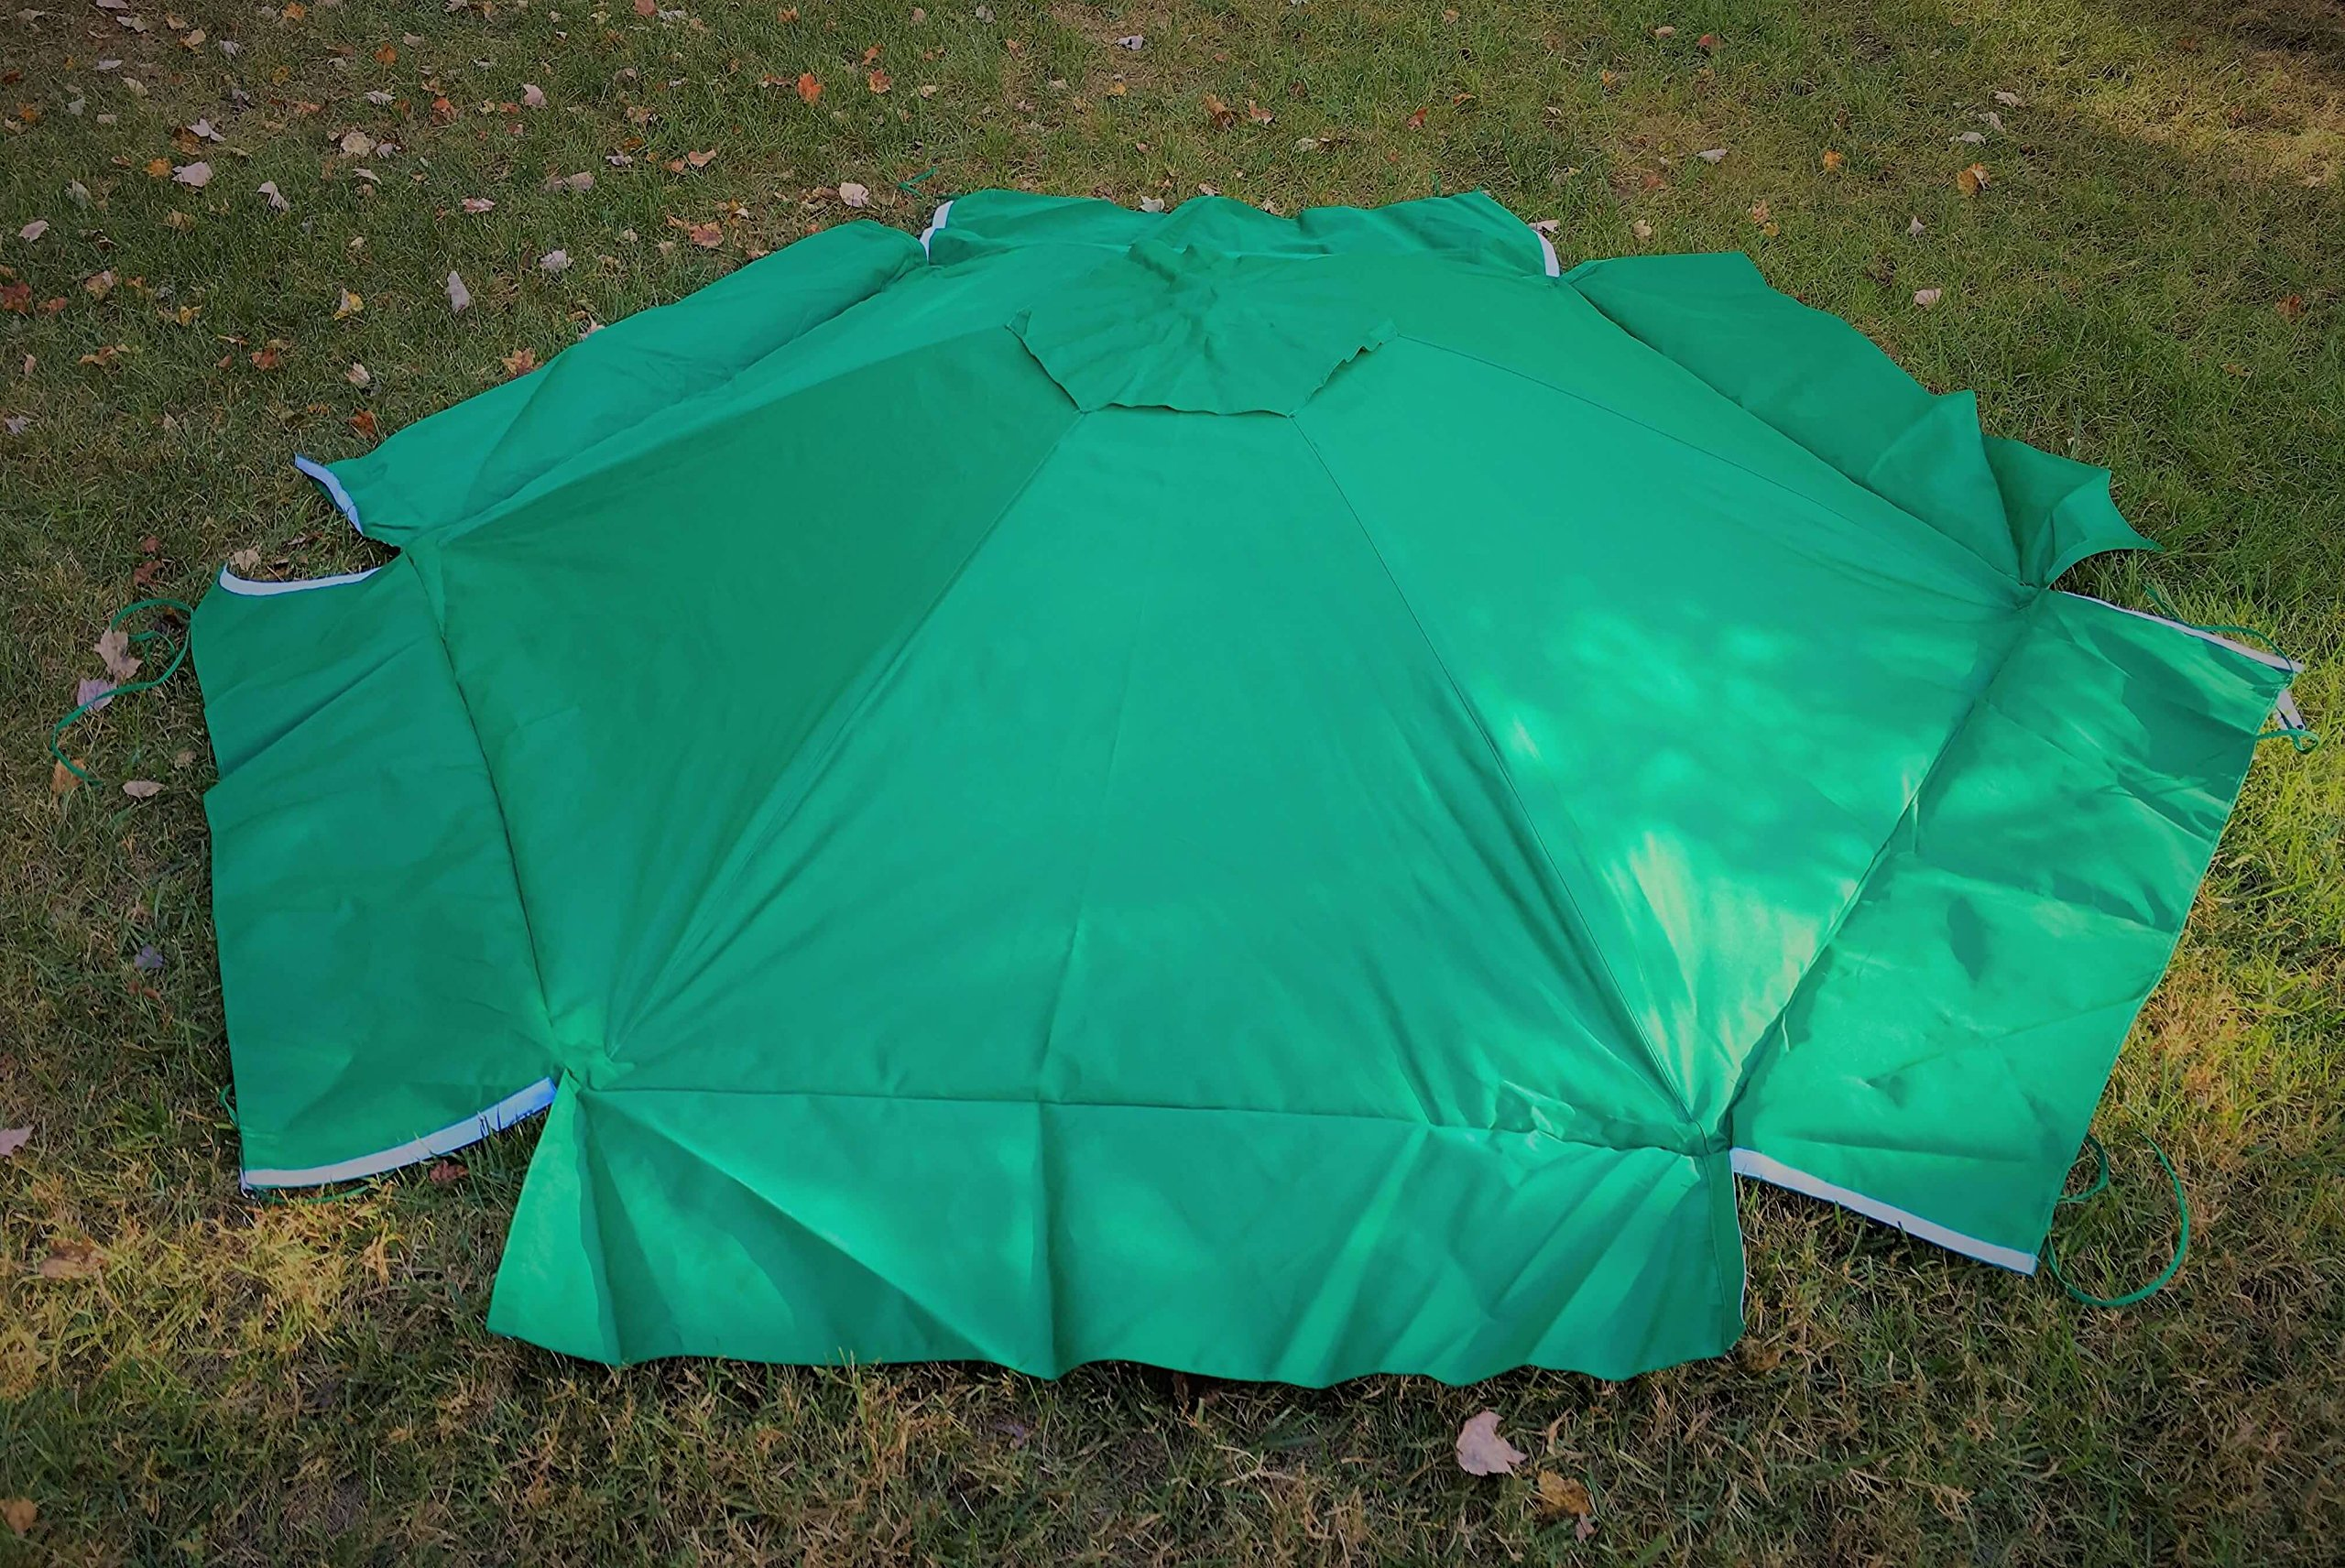 Frame It All 300001508 Hexagonal Collapsible Sandbox Cover, 7' x 8' x 13.5'' by Frame It All (Image #5)